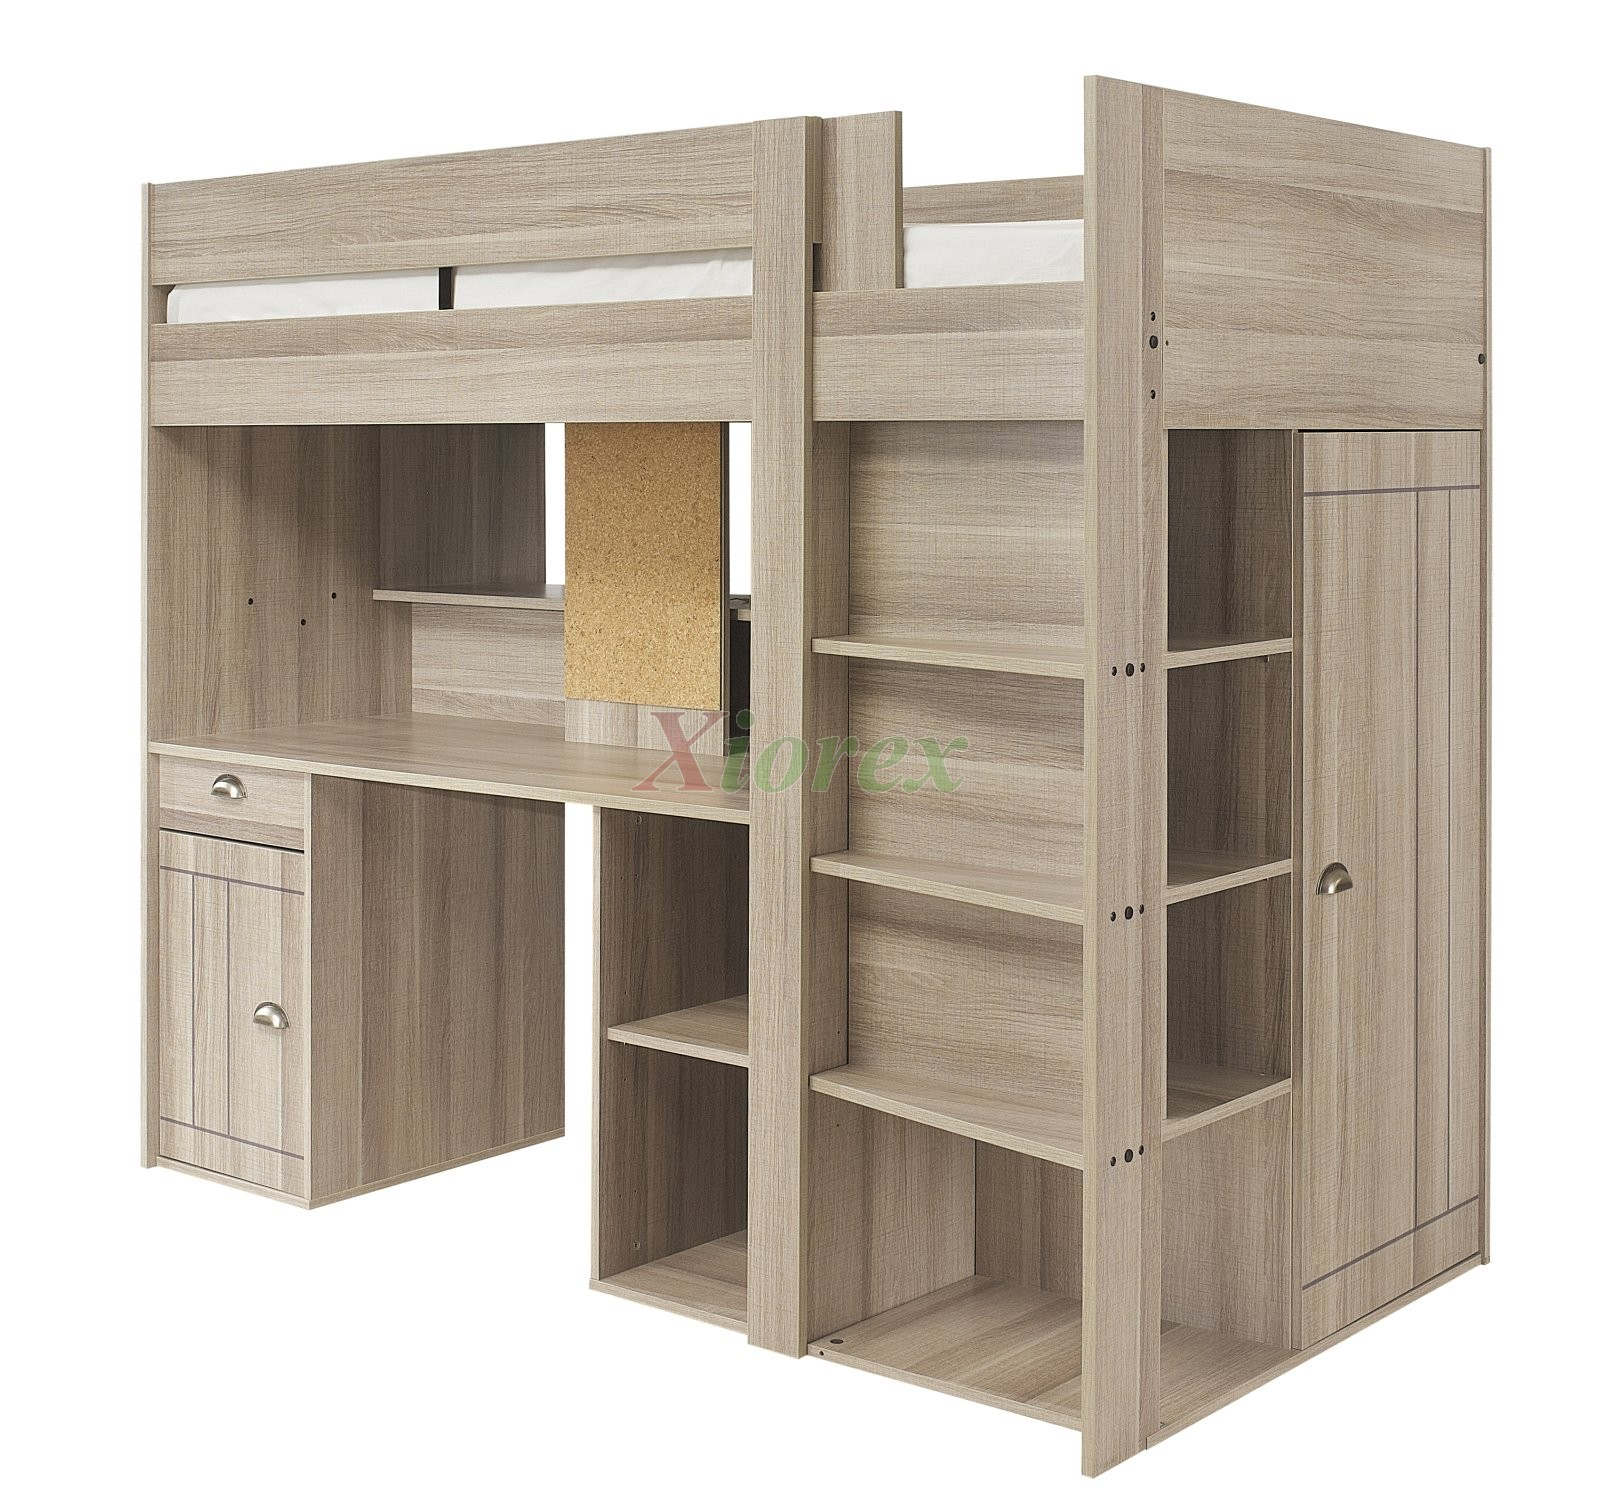 one closet plans underneath with beds pinterest for loft combo desk marvellous in ideas home and design office trend a unique bed